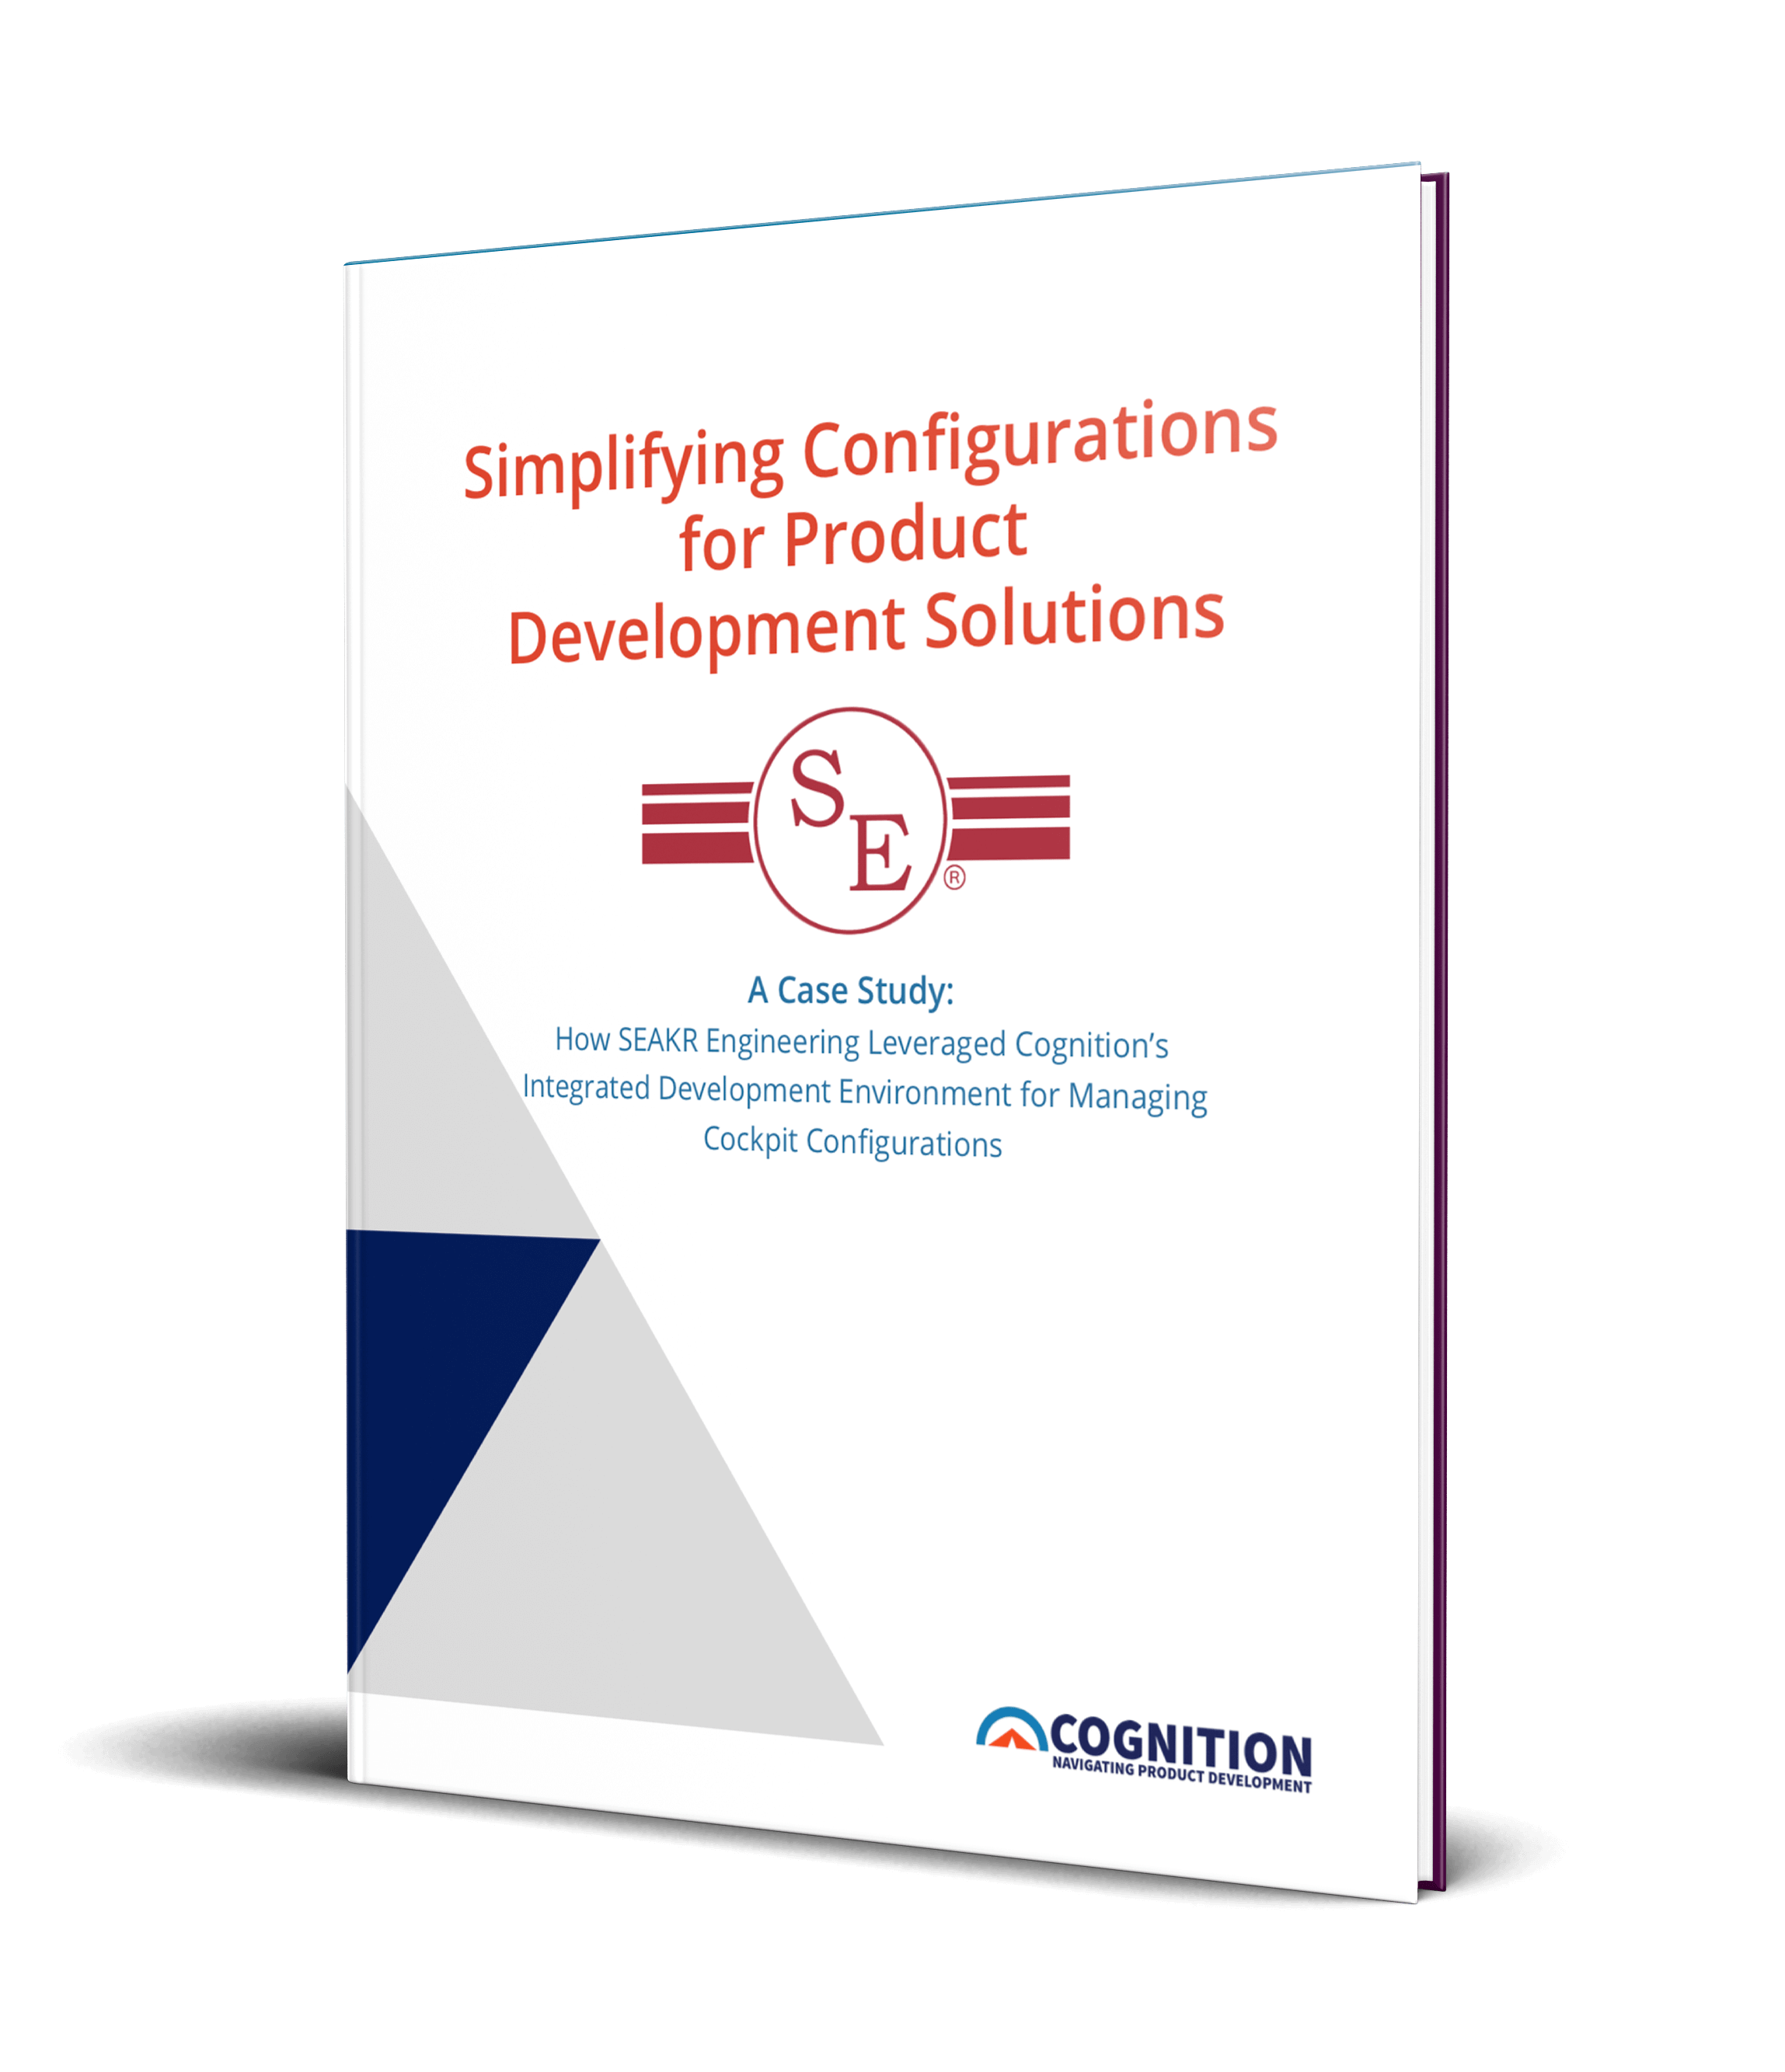 Cognition Corporation: Simplifying Configurations for Product Development Solutions, a Case Study with SEAKR Engineering, Inc.